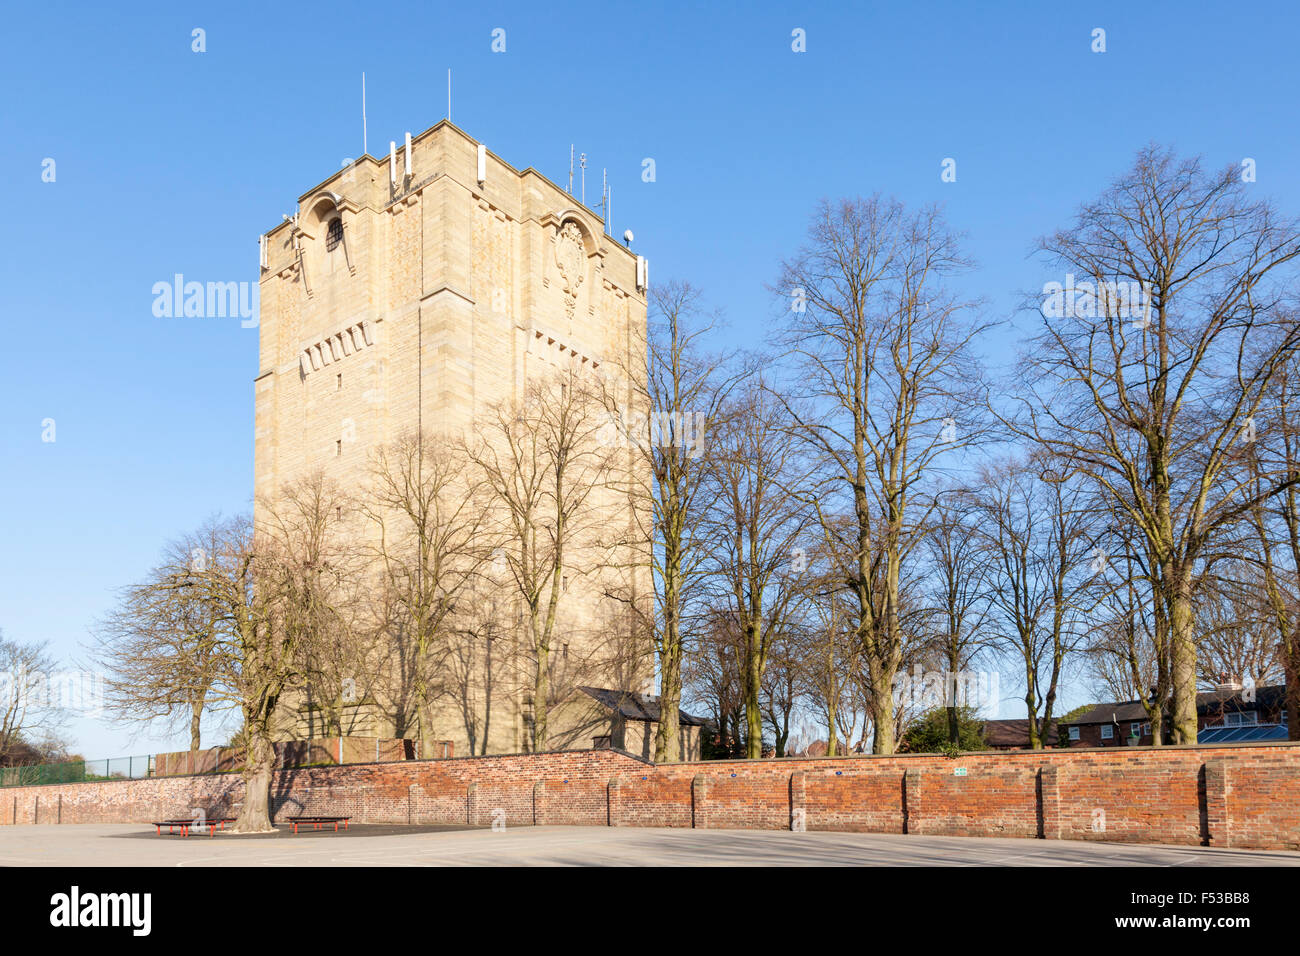 Westgate Water Tower, Lincoln, UK - Stock Image